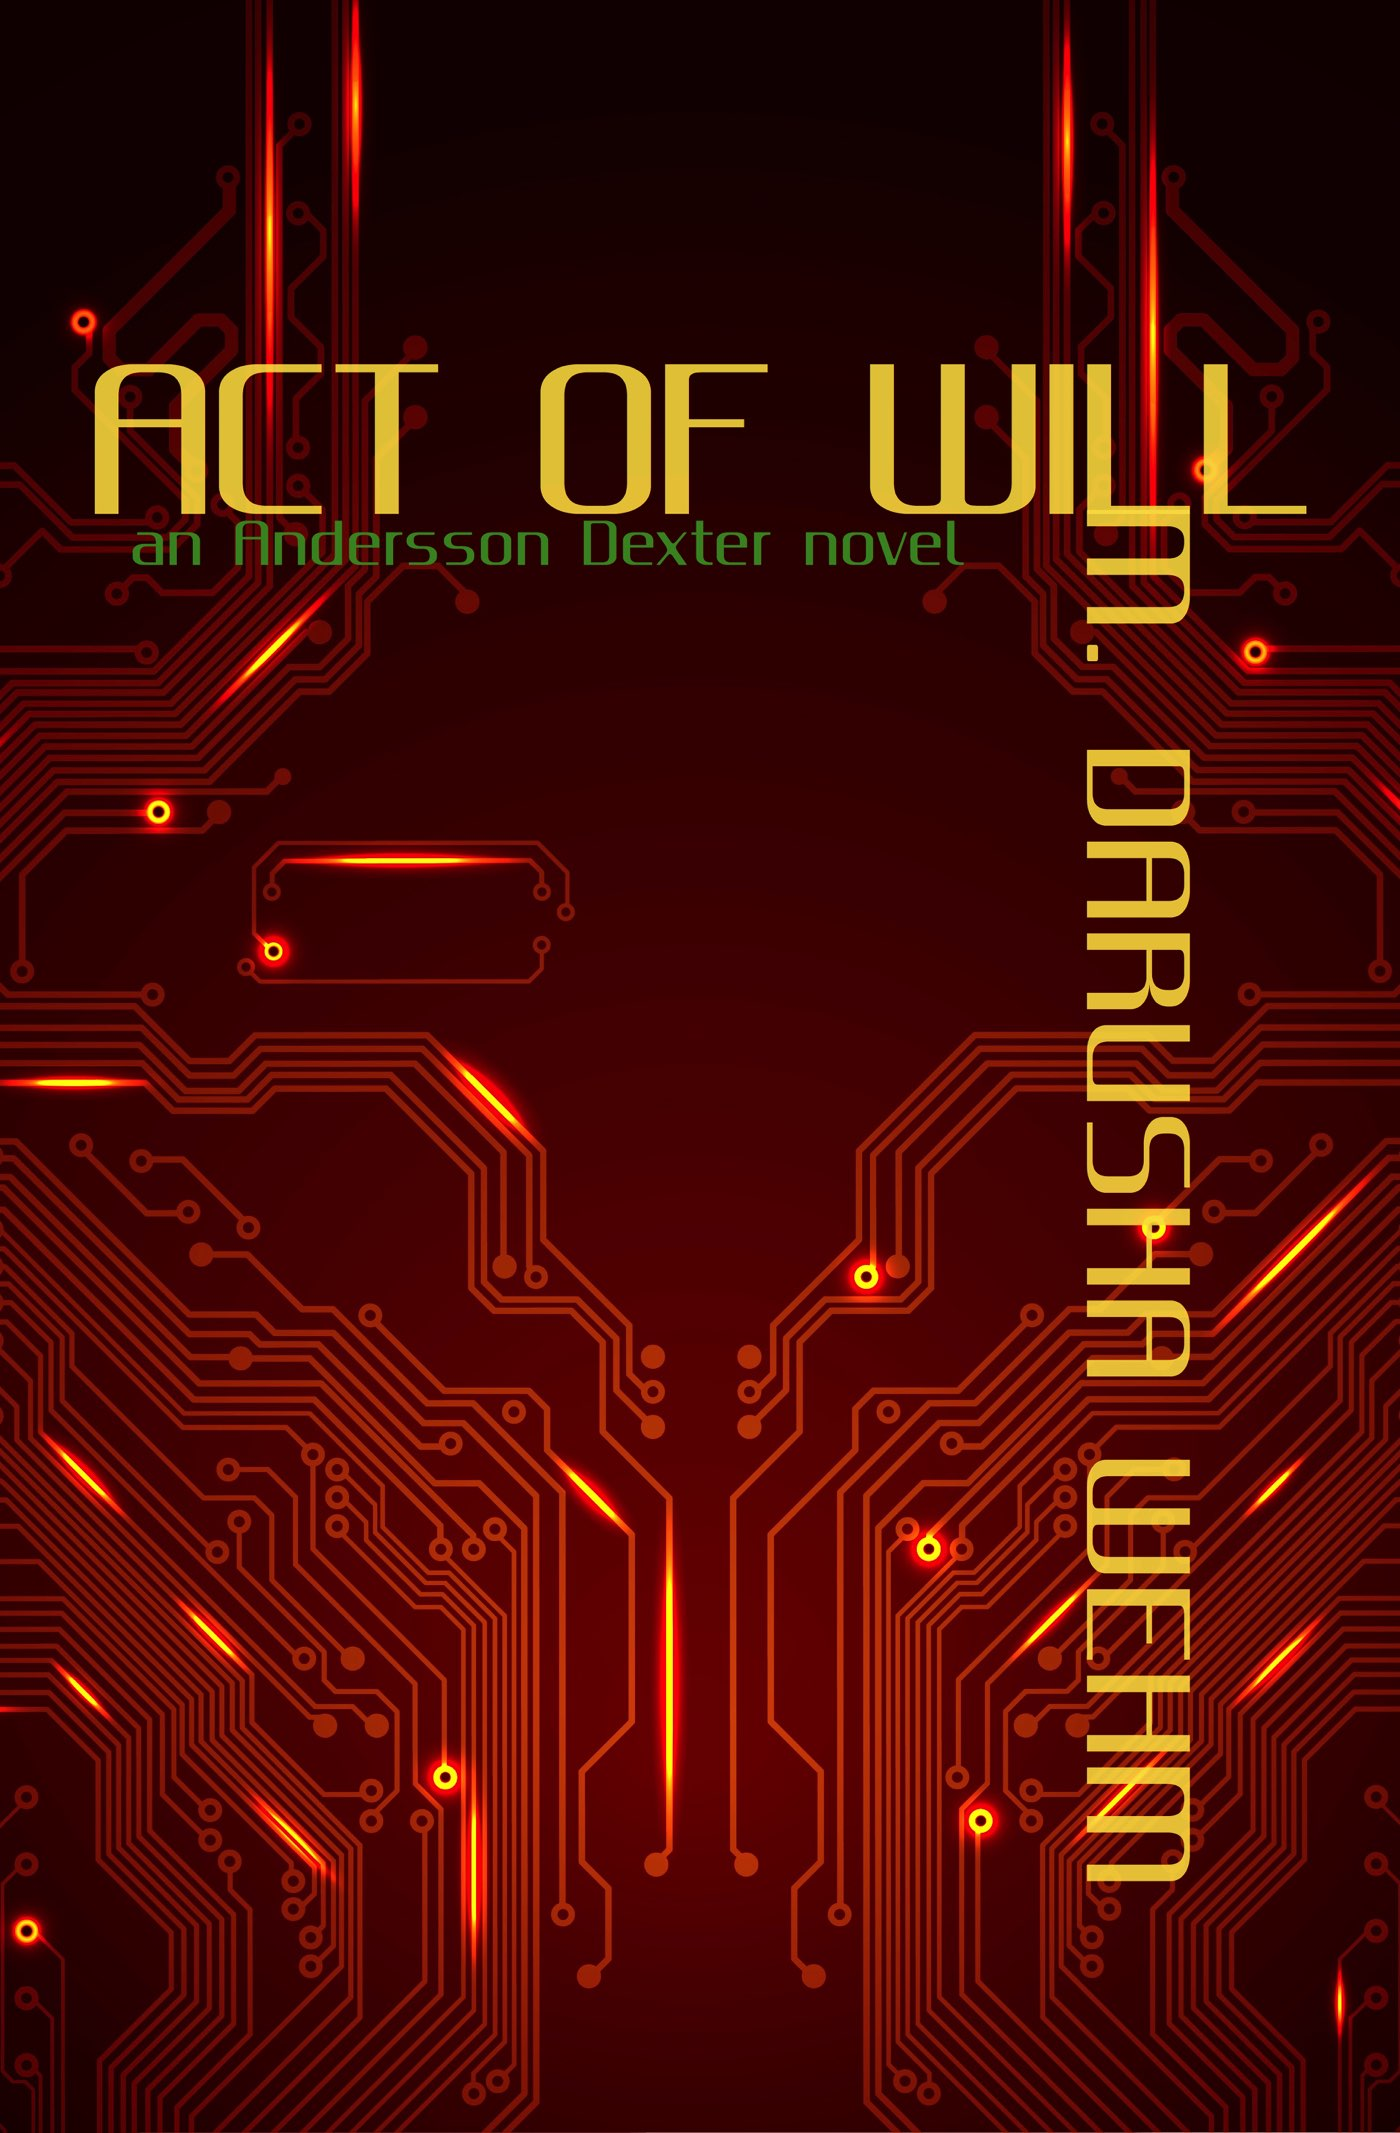 Enter to Win a Free Copy of Act of Will on Audible